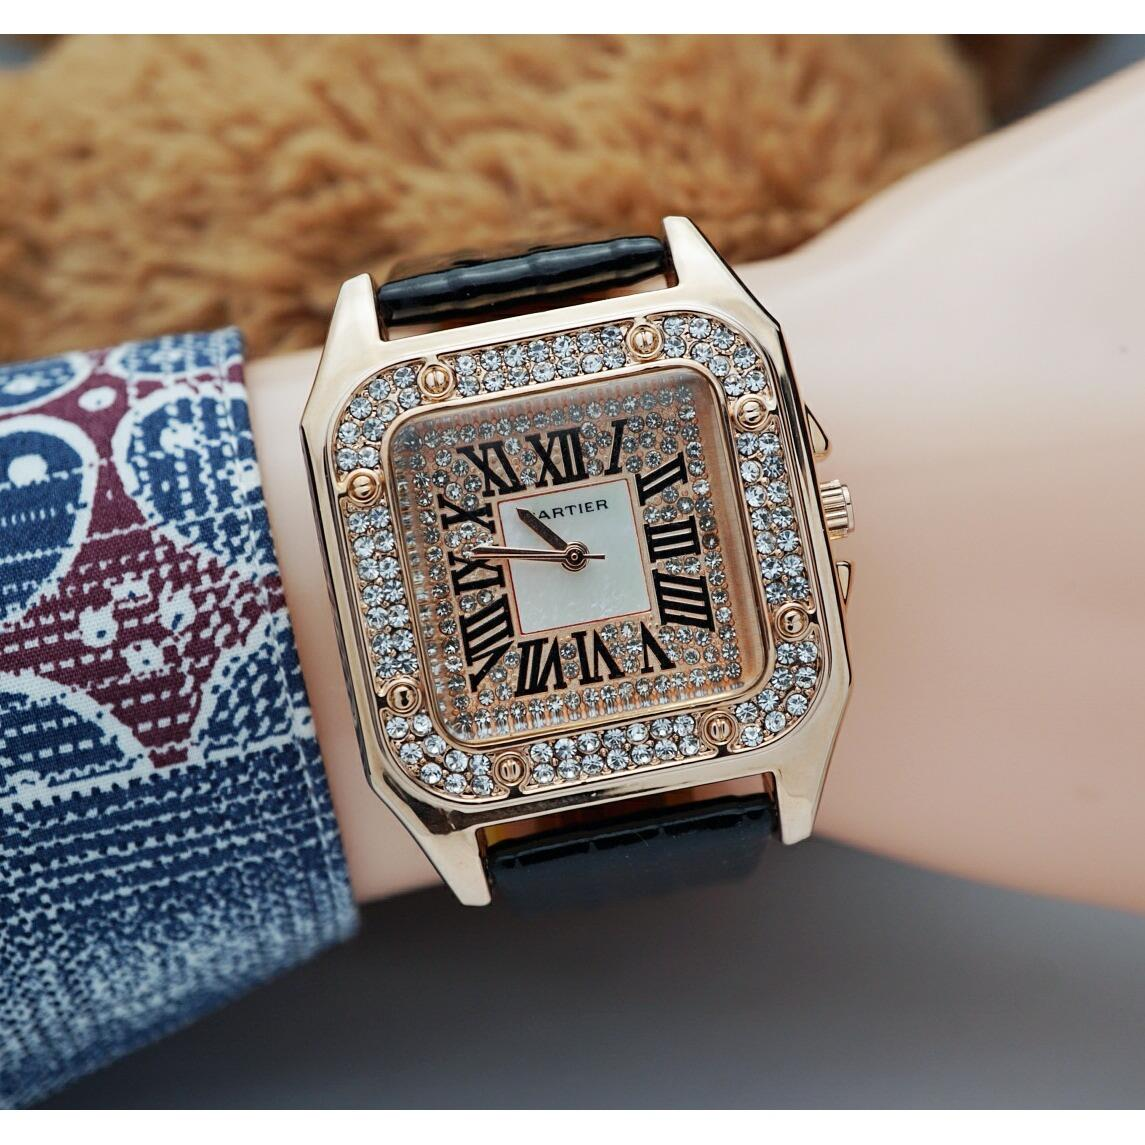 Jam Tangan Cartier Adriaana - Limited Edition Elegant Series-Pria Wanita Formal Kasual Terbaru-Women or Men Luxury Watch-Leather Strap-Kulit Kanvas Army Kekinian Sporty Fashionable Bonus Zippo Premium Beam Korek Free Trend 2018